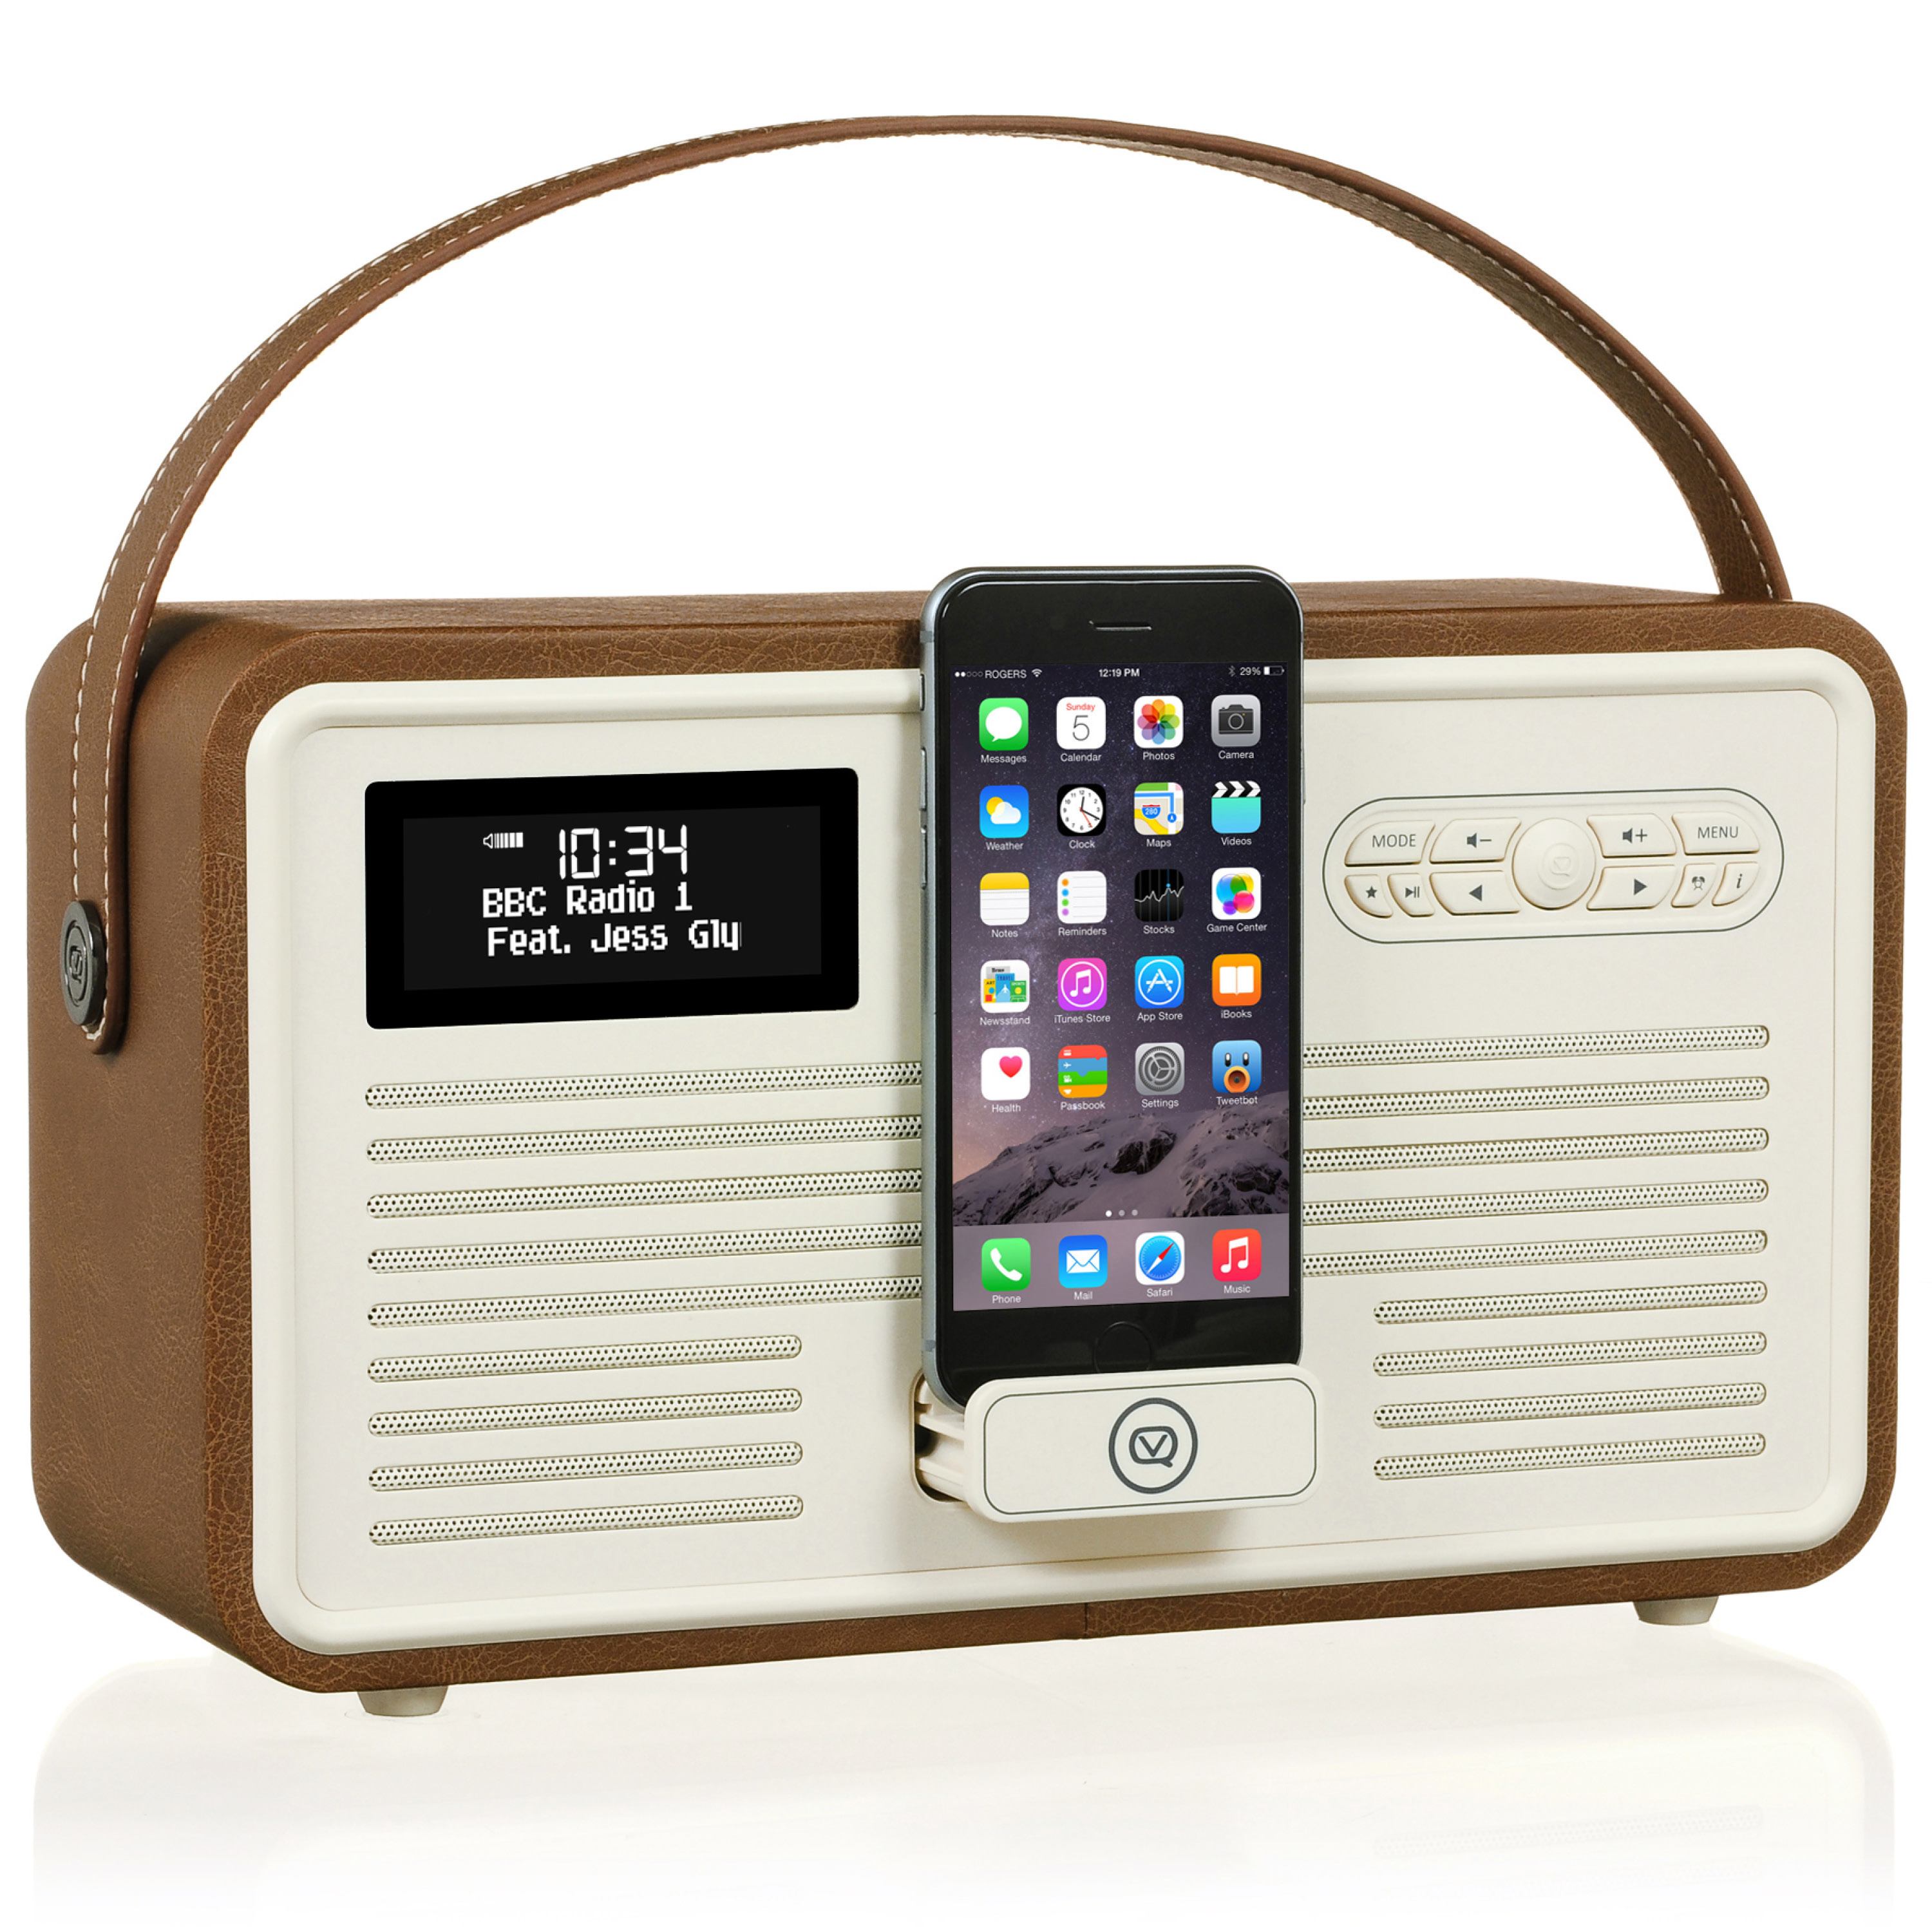 Details about VQ Retro Mk II DAB+ with FM, Bluetooth, Apple Lightning Dock  & Alarm - Brown